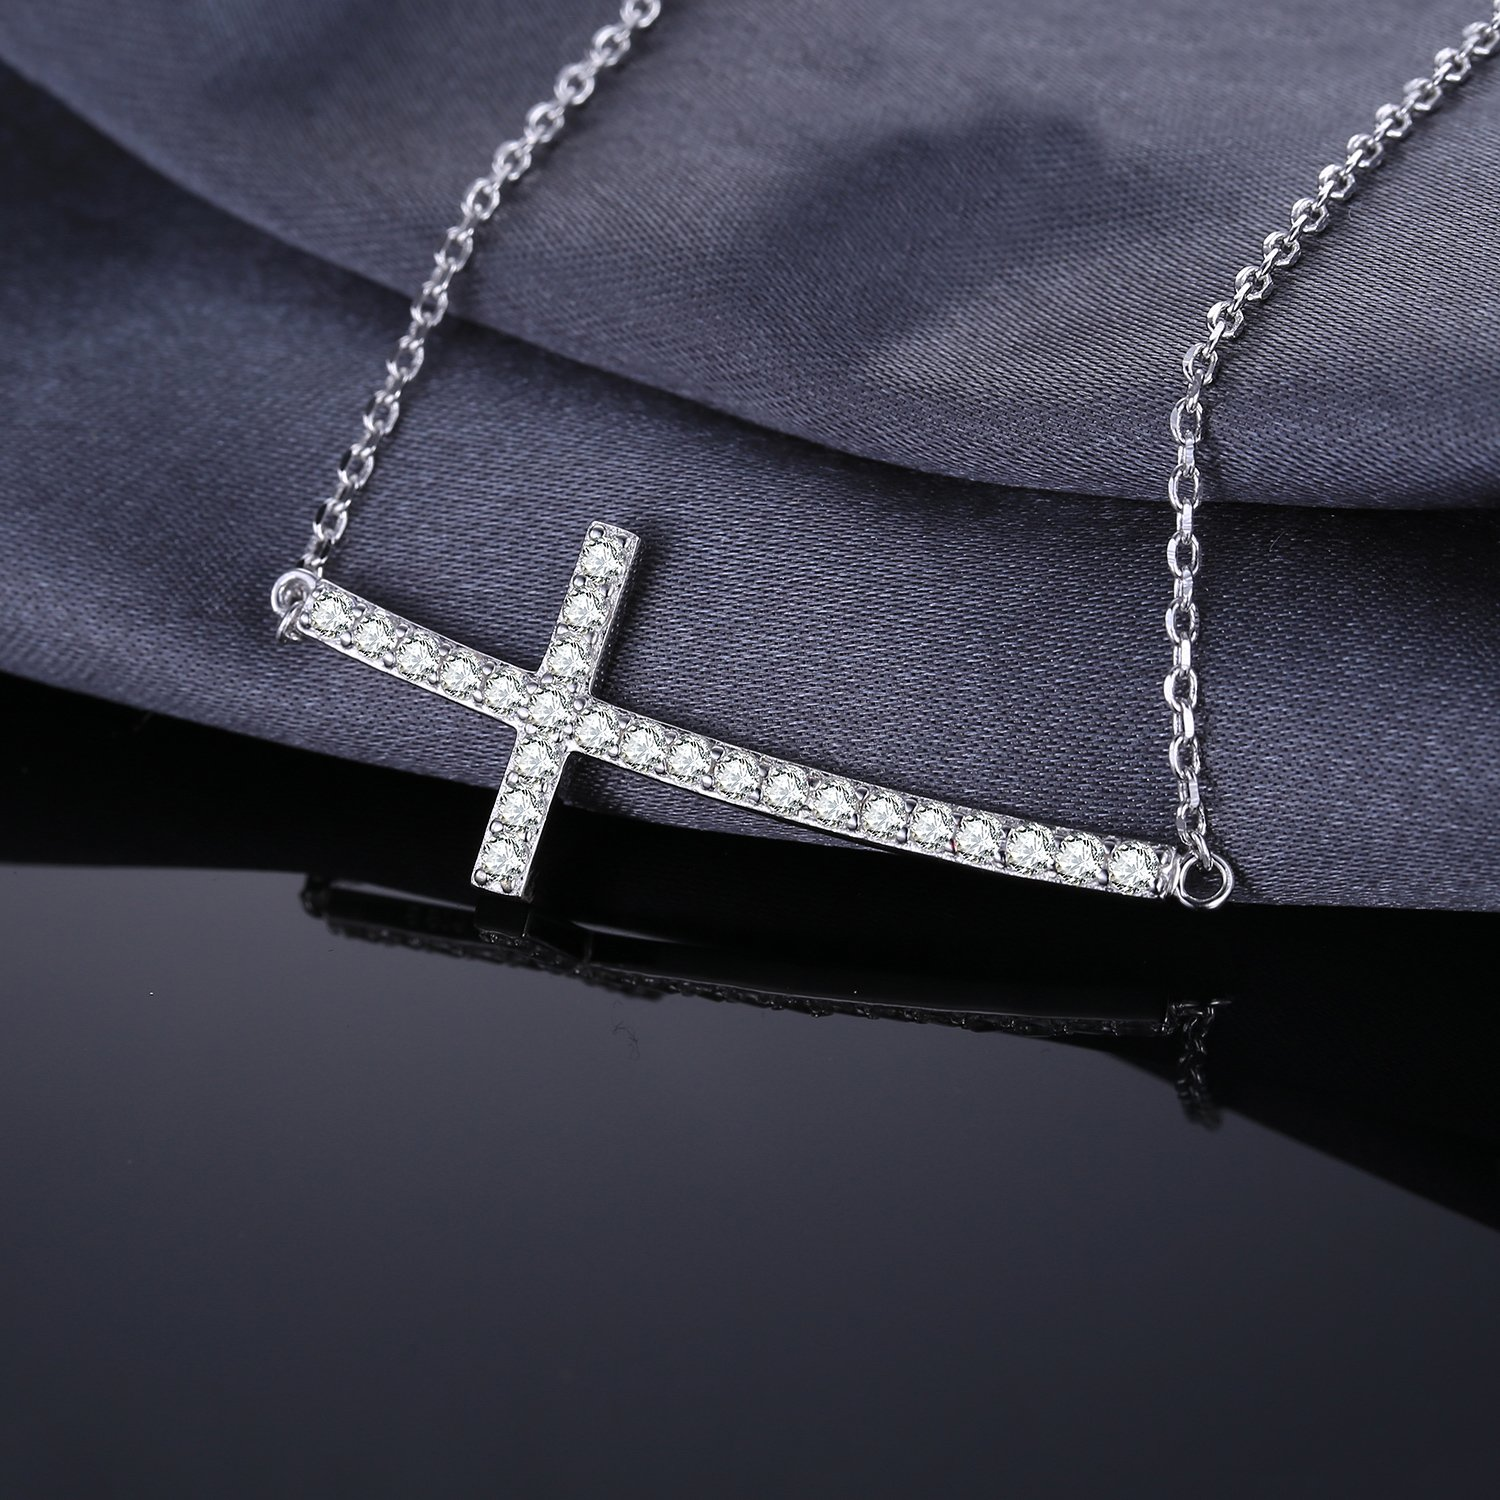 JewelryPalace Cross 0.9ct Cubic Zirconia Necklace 925 Sterling Silver